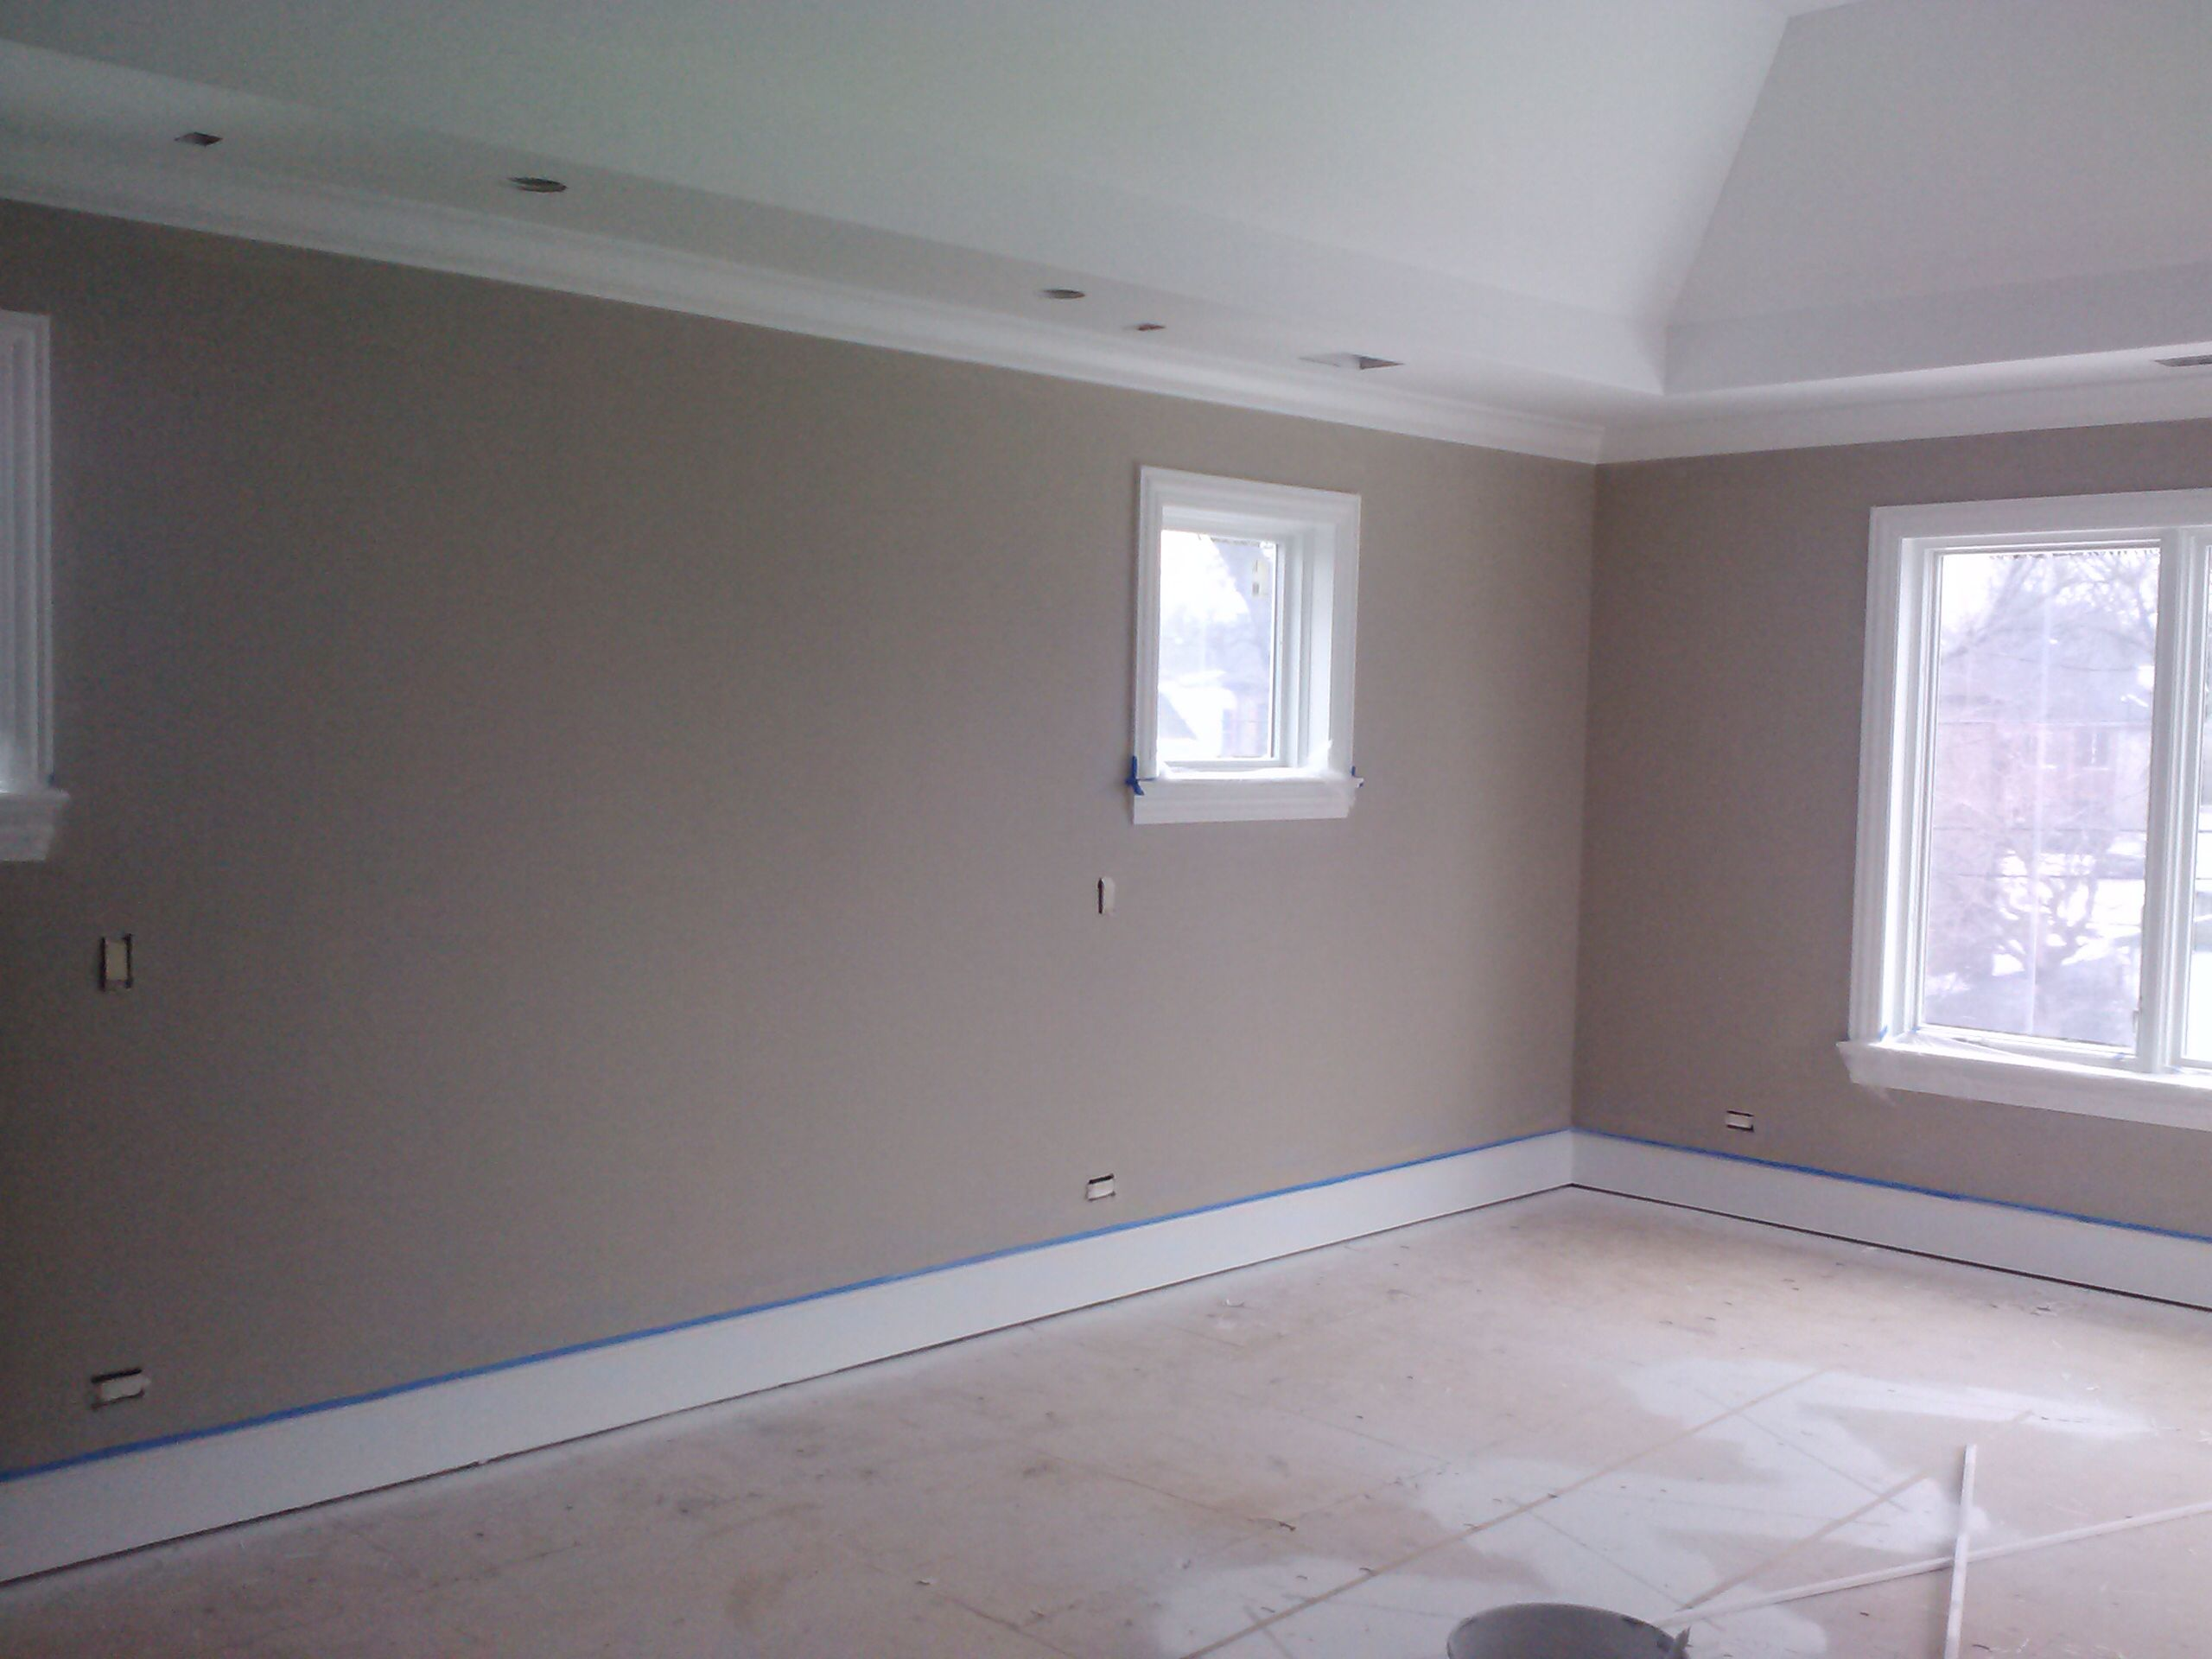 Amazing Grey Paint Amazing Gray Sherwin Williams Paint Colors And Brand